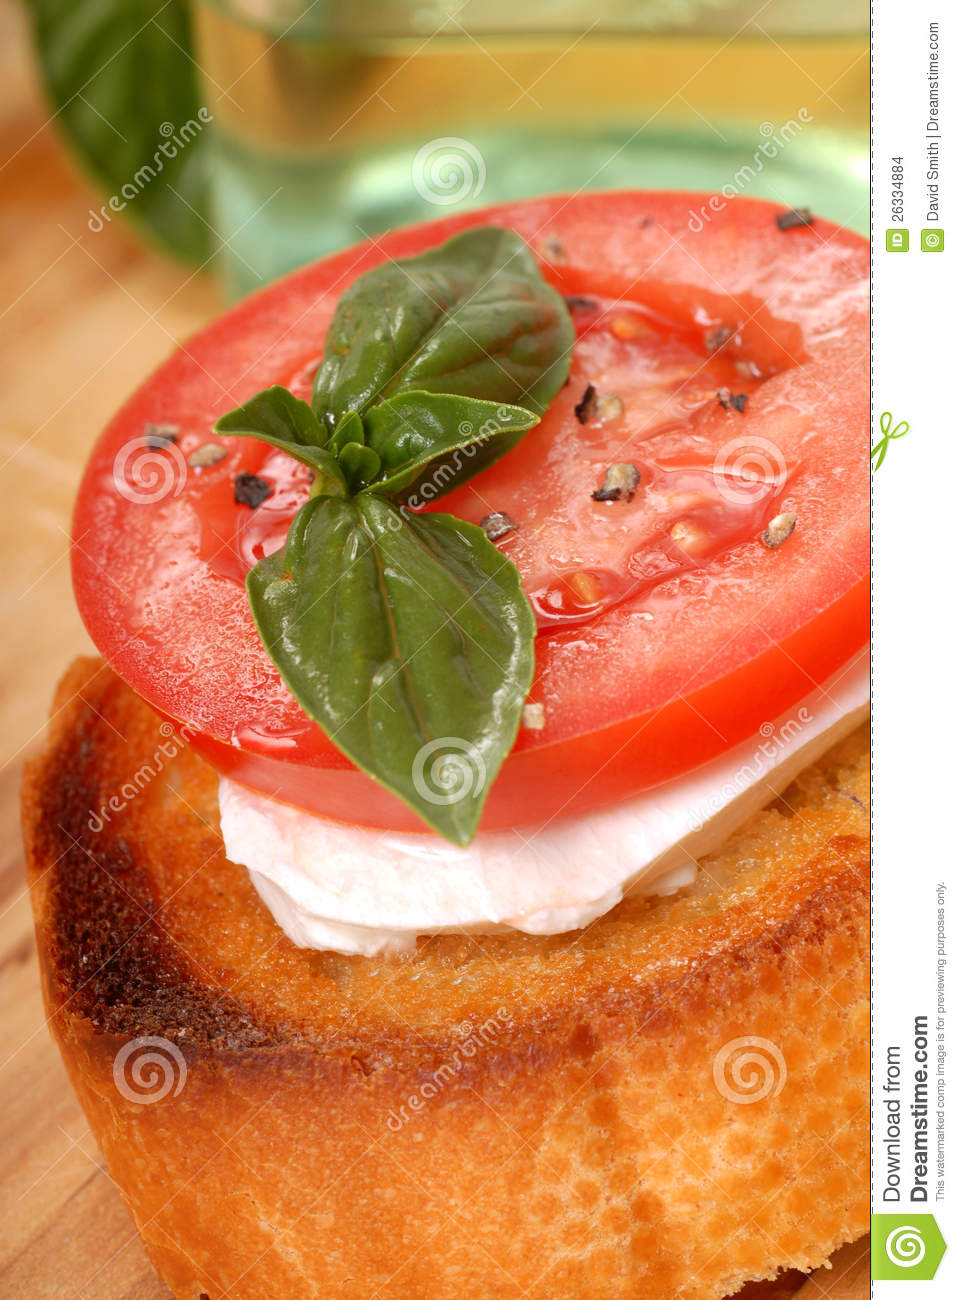 Bruschetta With Tomato, Mozzarella And Basil Stock Images - Image ...